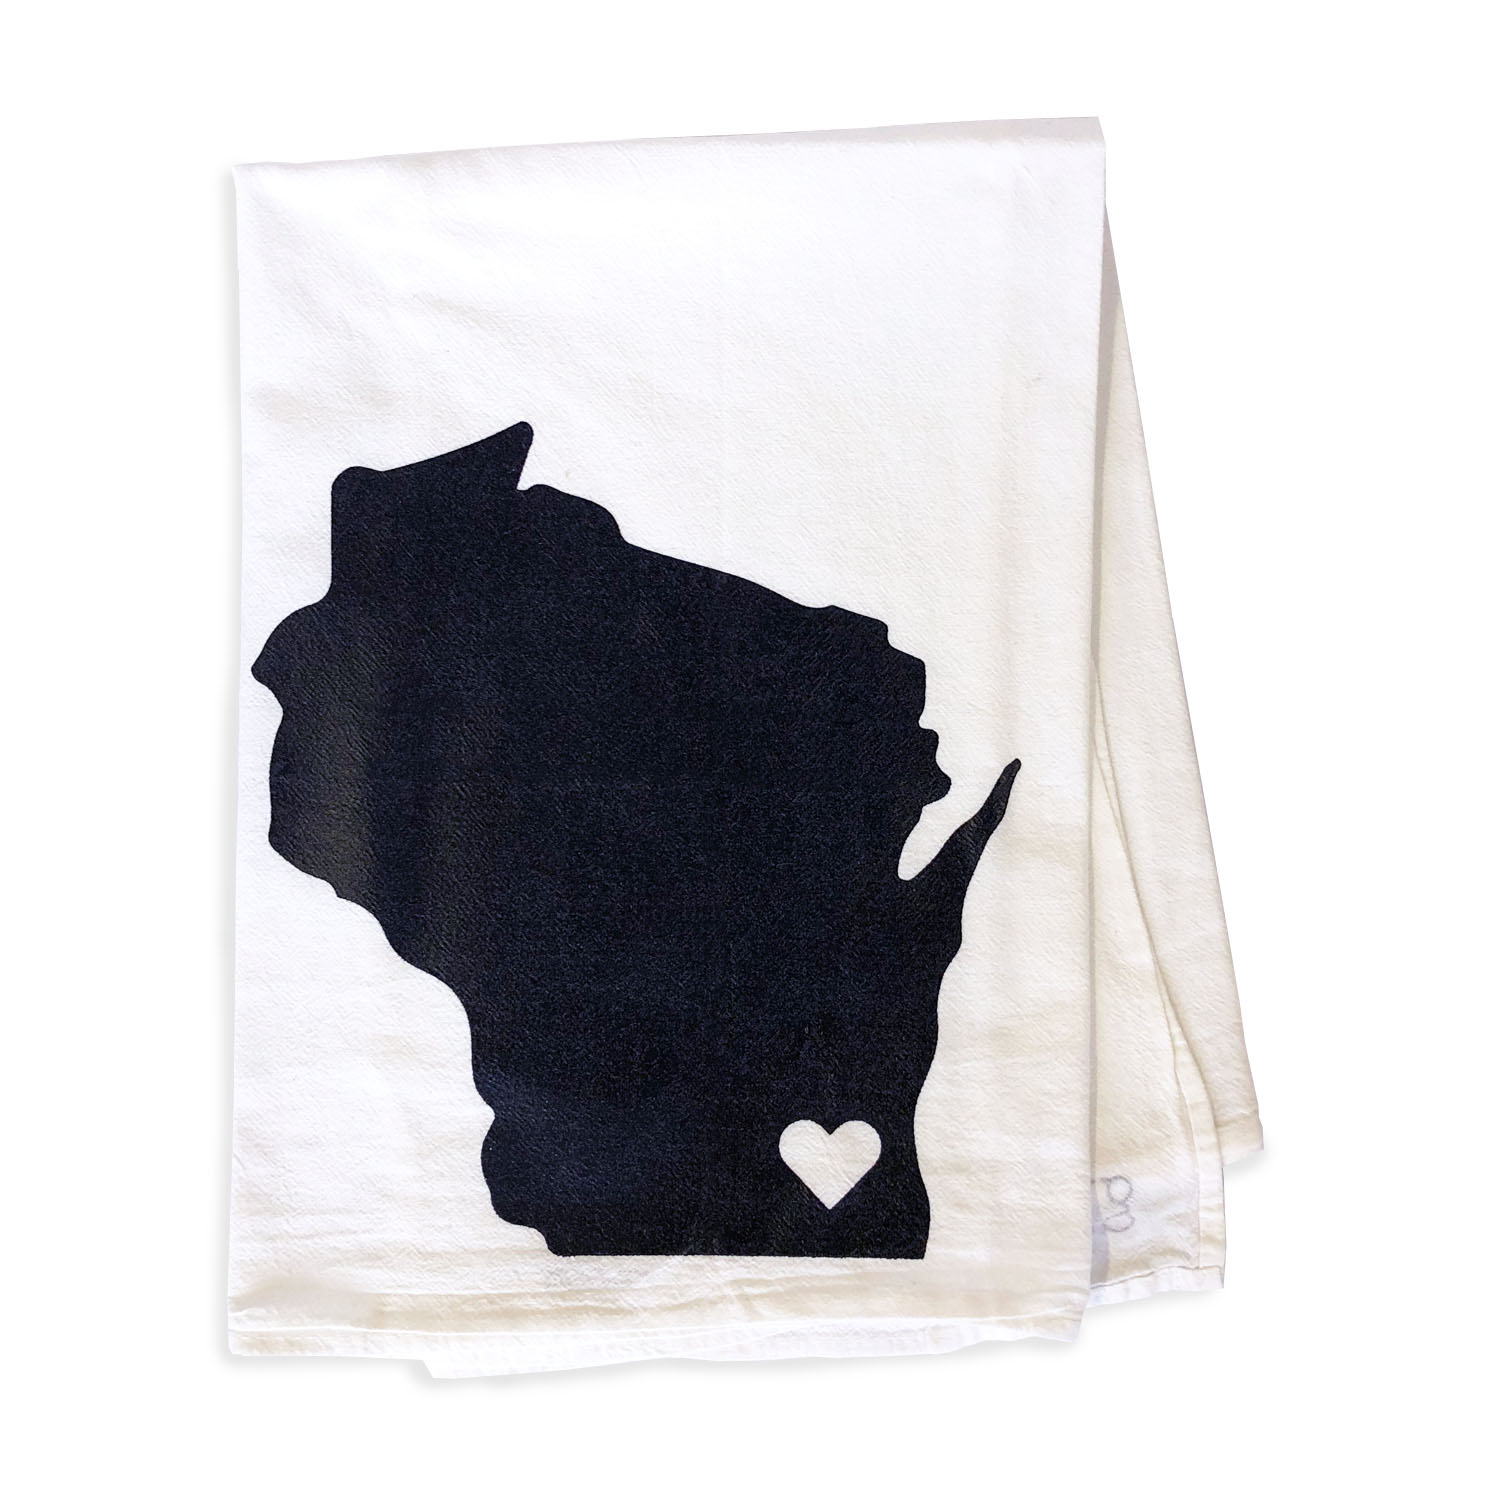 WisconsinHeart_BackgroundRemoved2.jpg